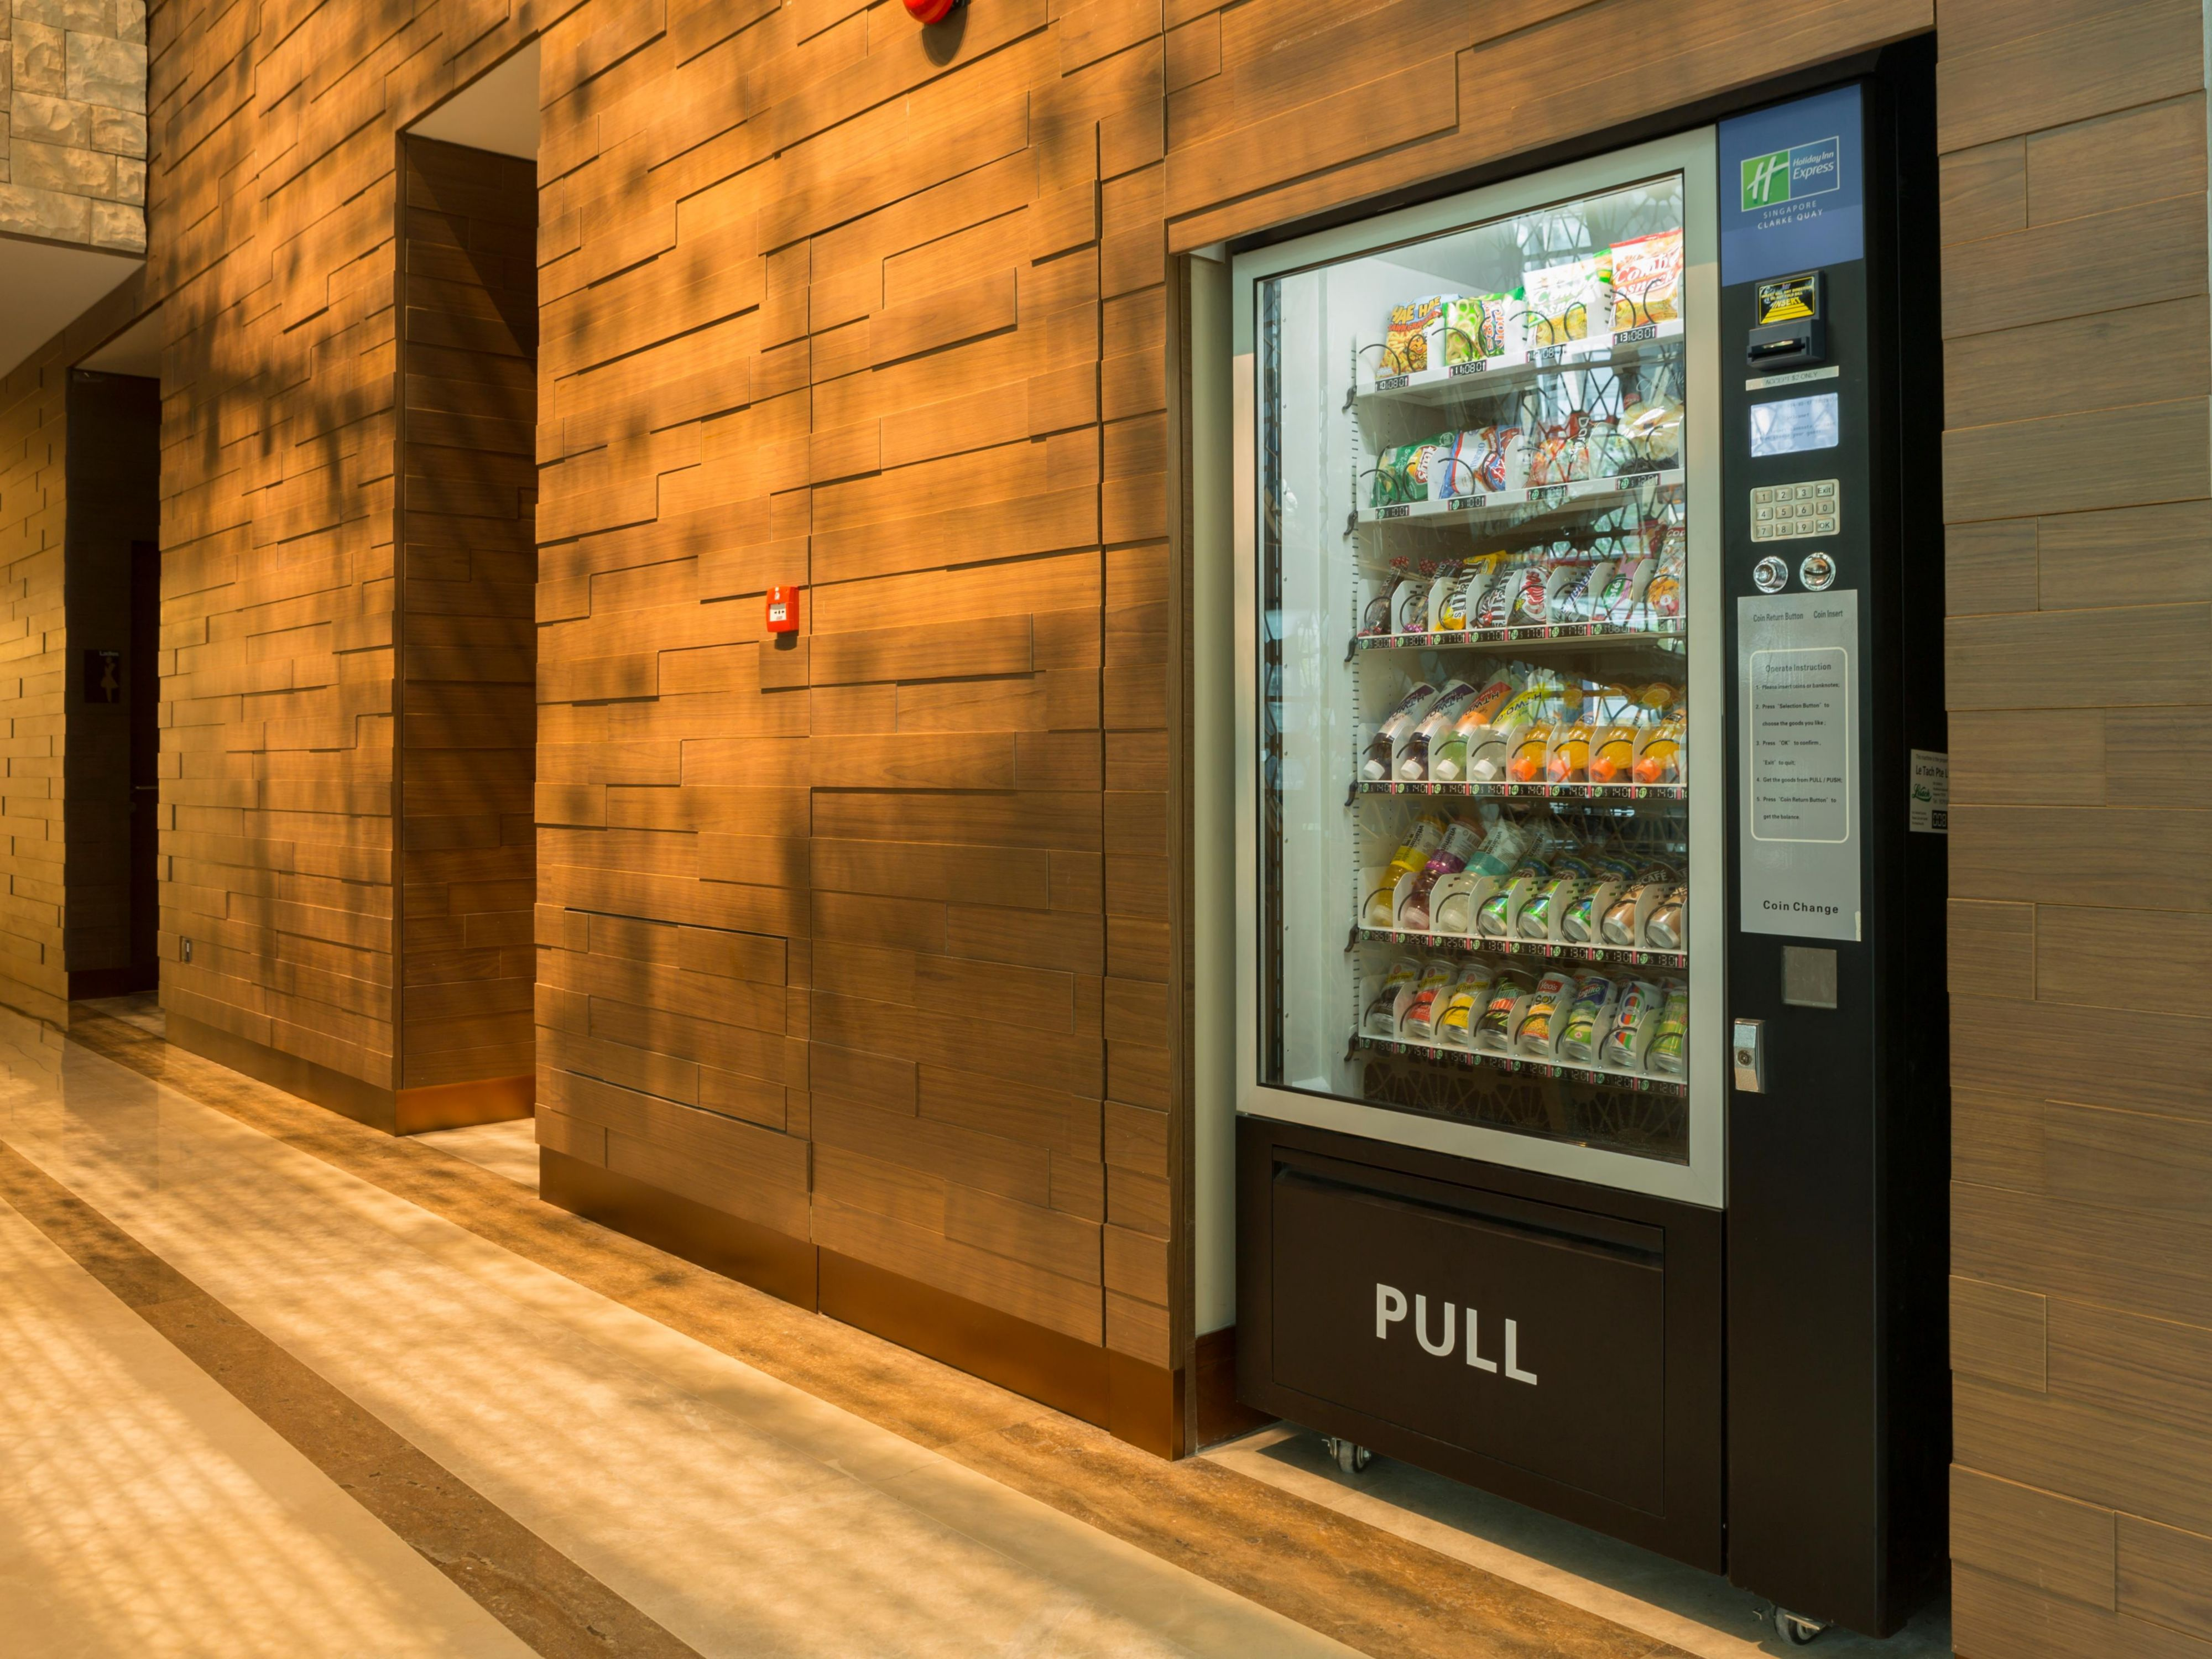 Vending Machine Located at Lobby Level